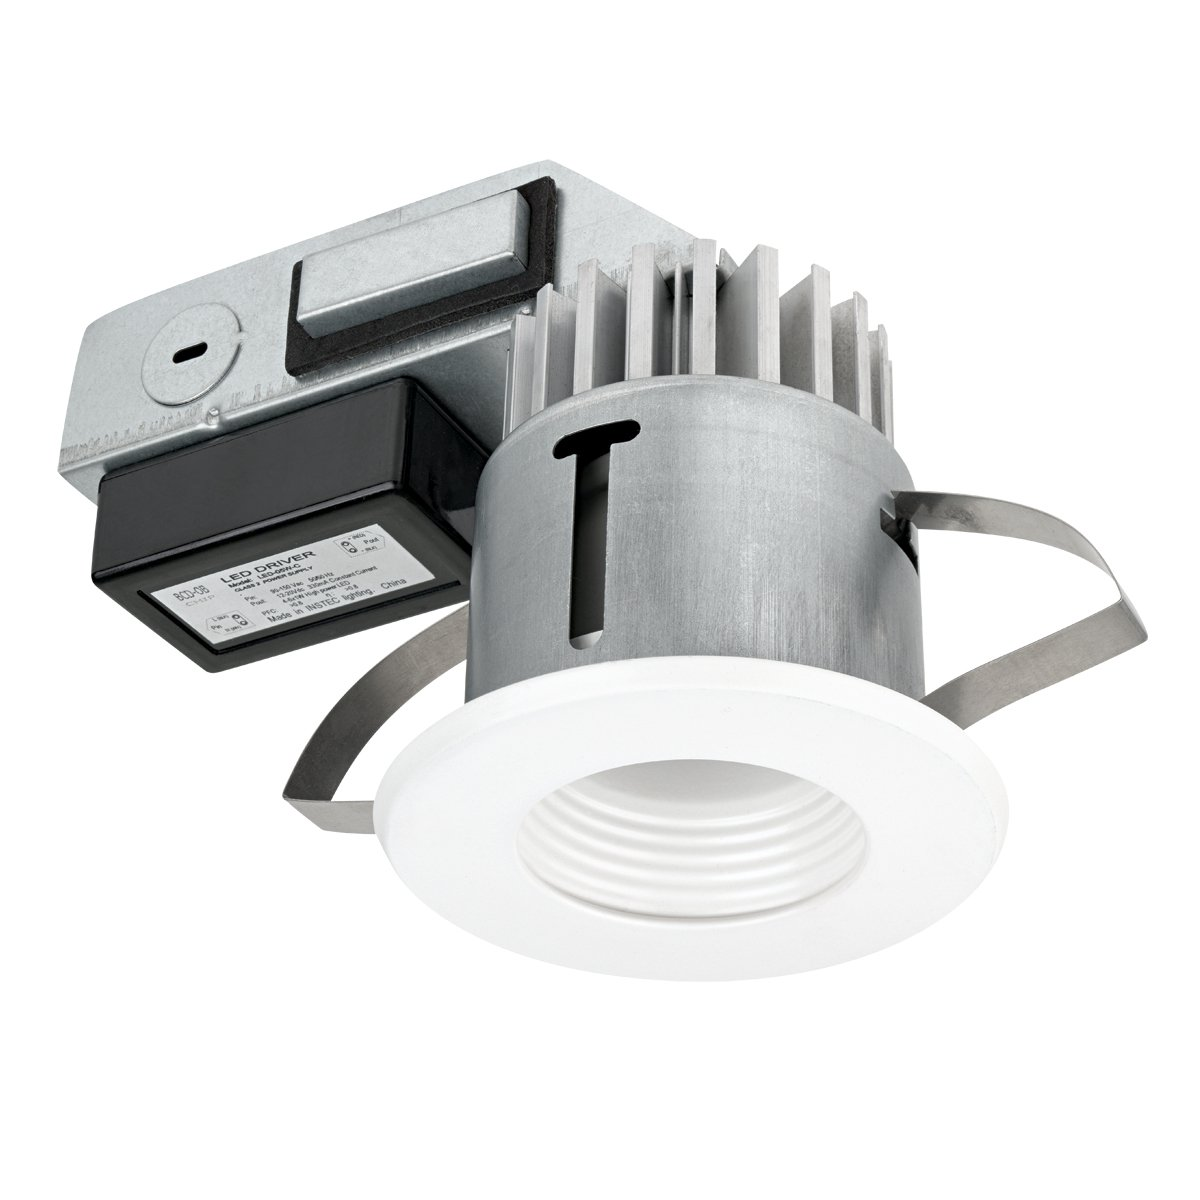 Globe electric 90072 3 inch led integrated ic rated regressed ridged globe electric 90072 3 inch led integrated ic rated regressed ridged baffle recessed lighting kit title 24 compliant white finish baffle recessed light aloadofball Images